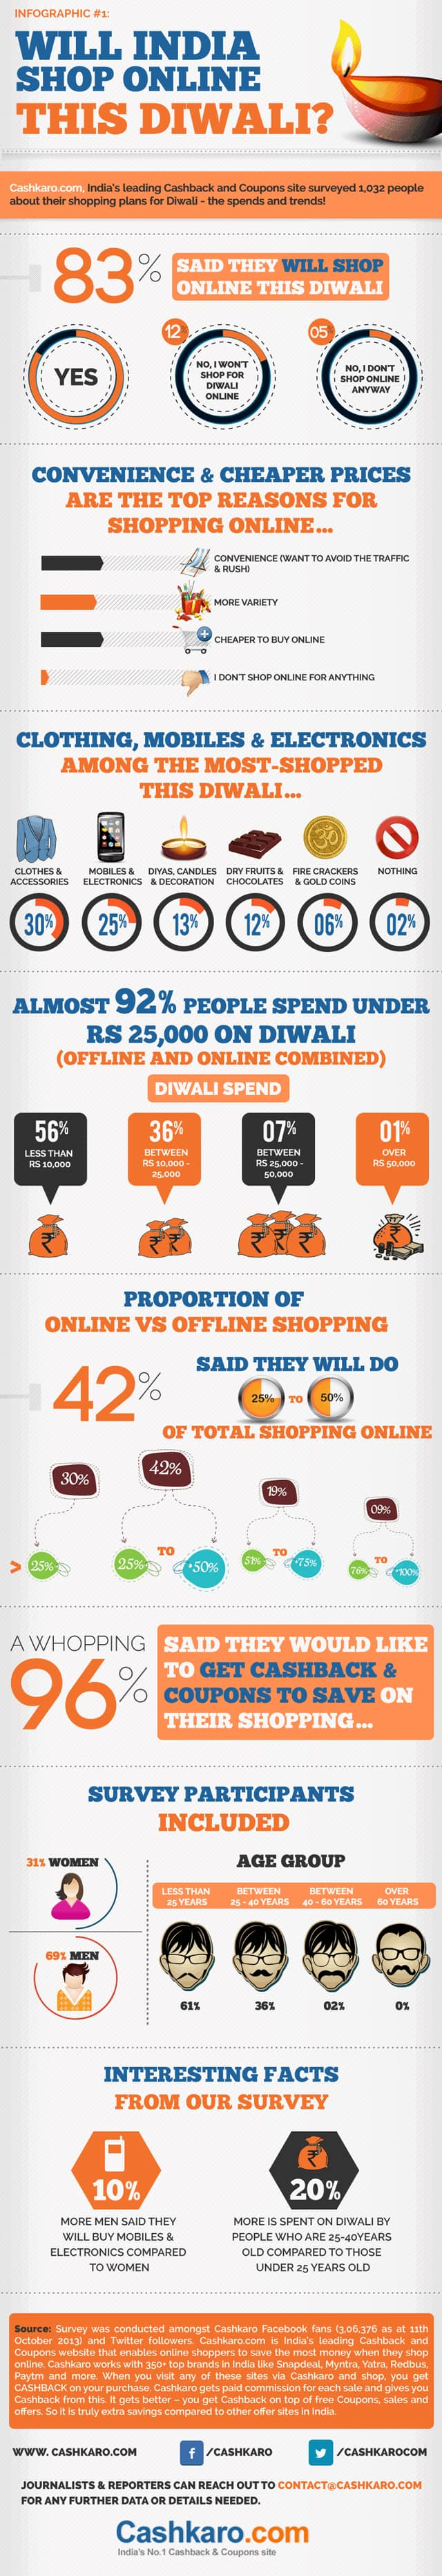 Online Shopping Diwali Tech18 - Infographic